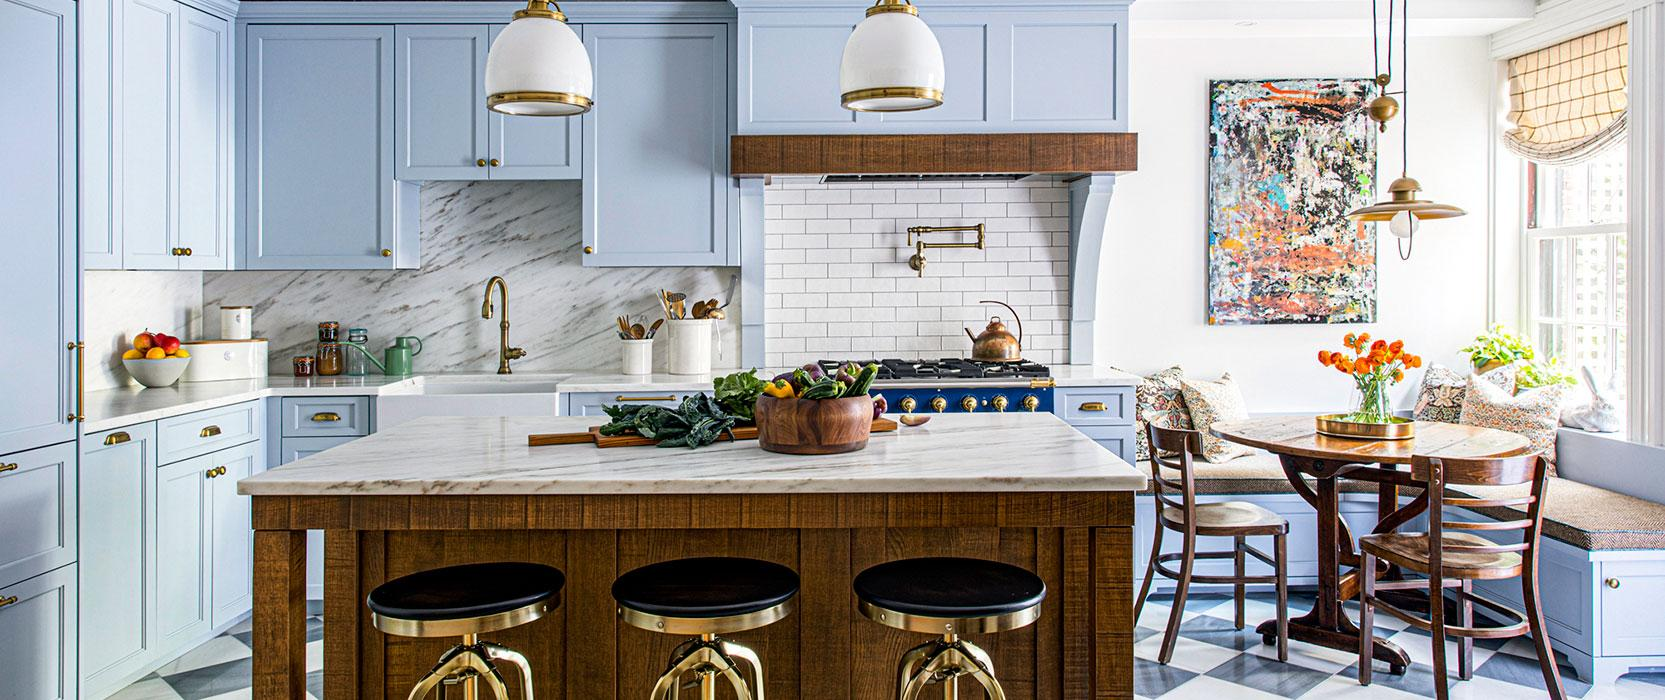 Pale blue kitchen with black and white tiled flooring and colorful art hanging over the breakfast nook